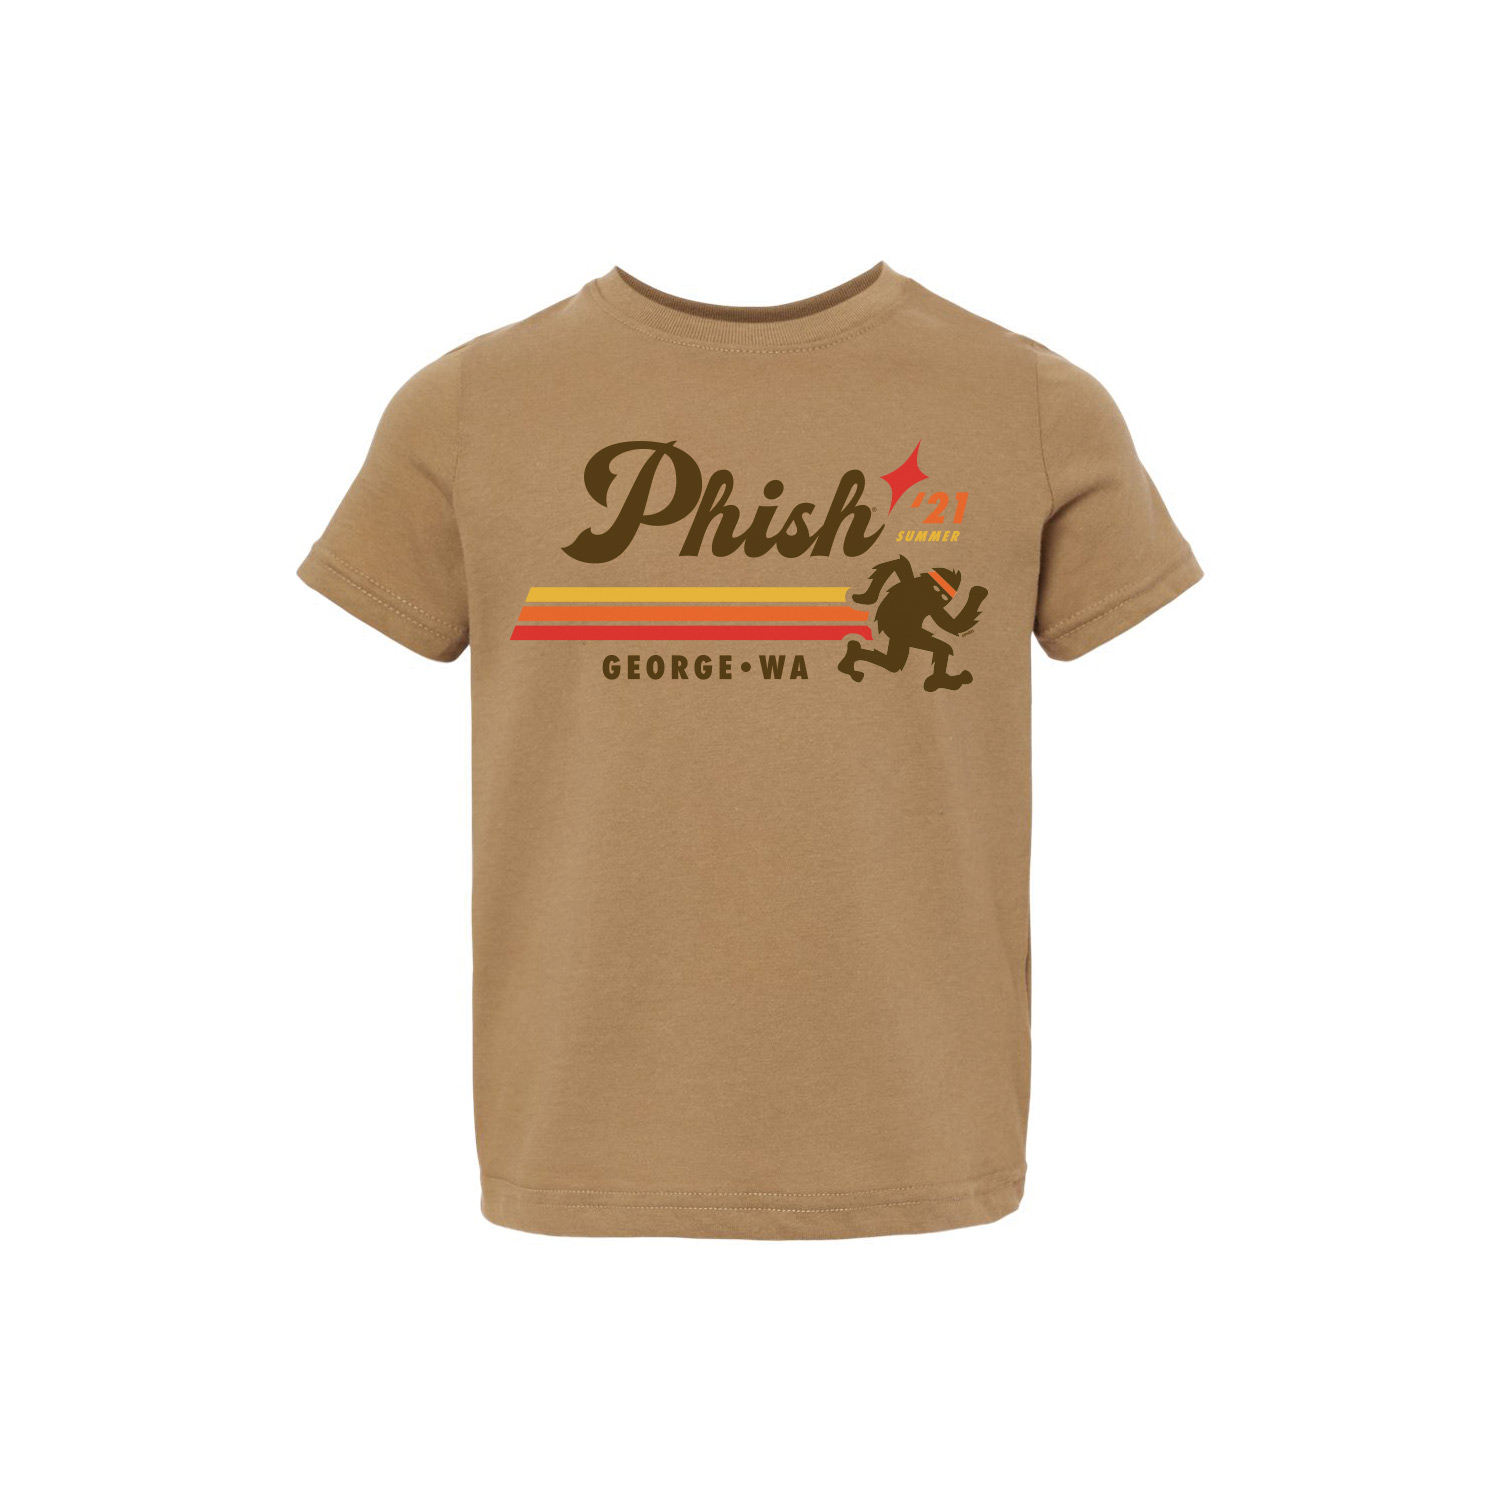 The Gorge 2021 Kid's Event T-shirt